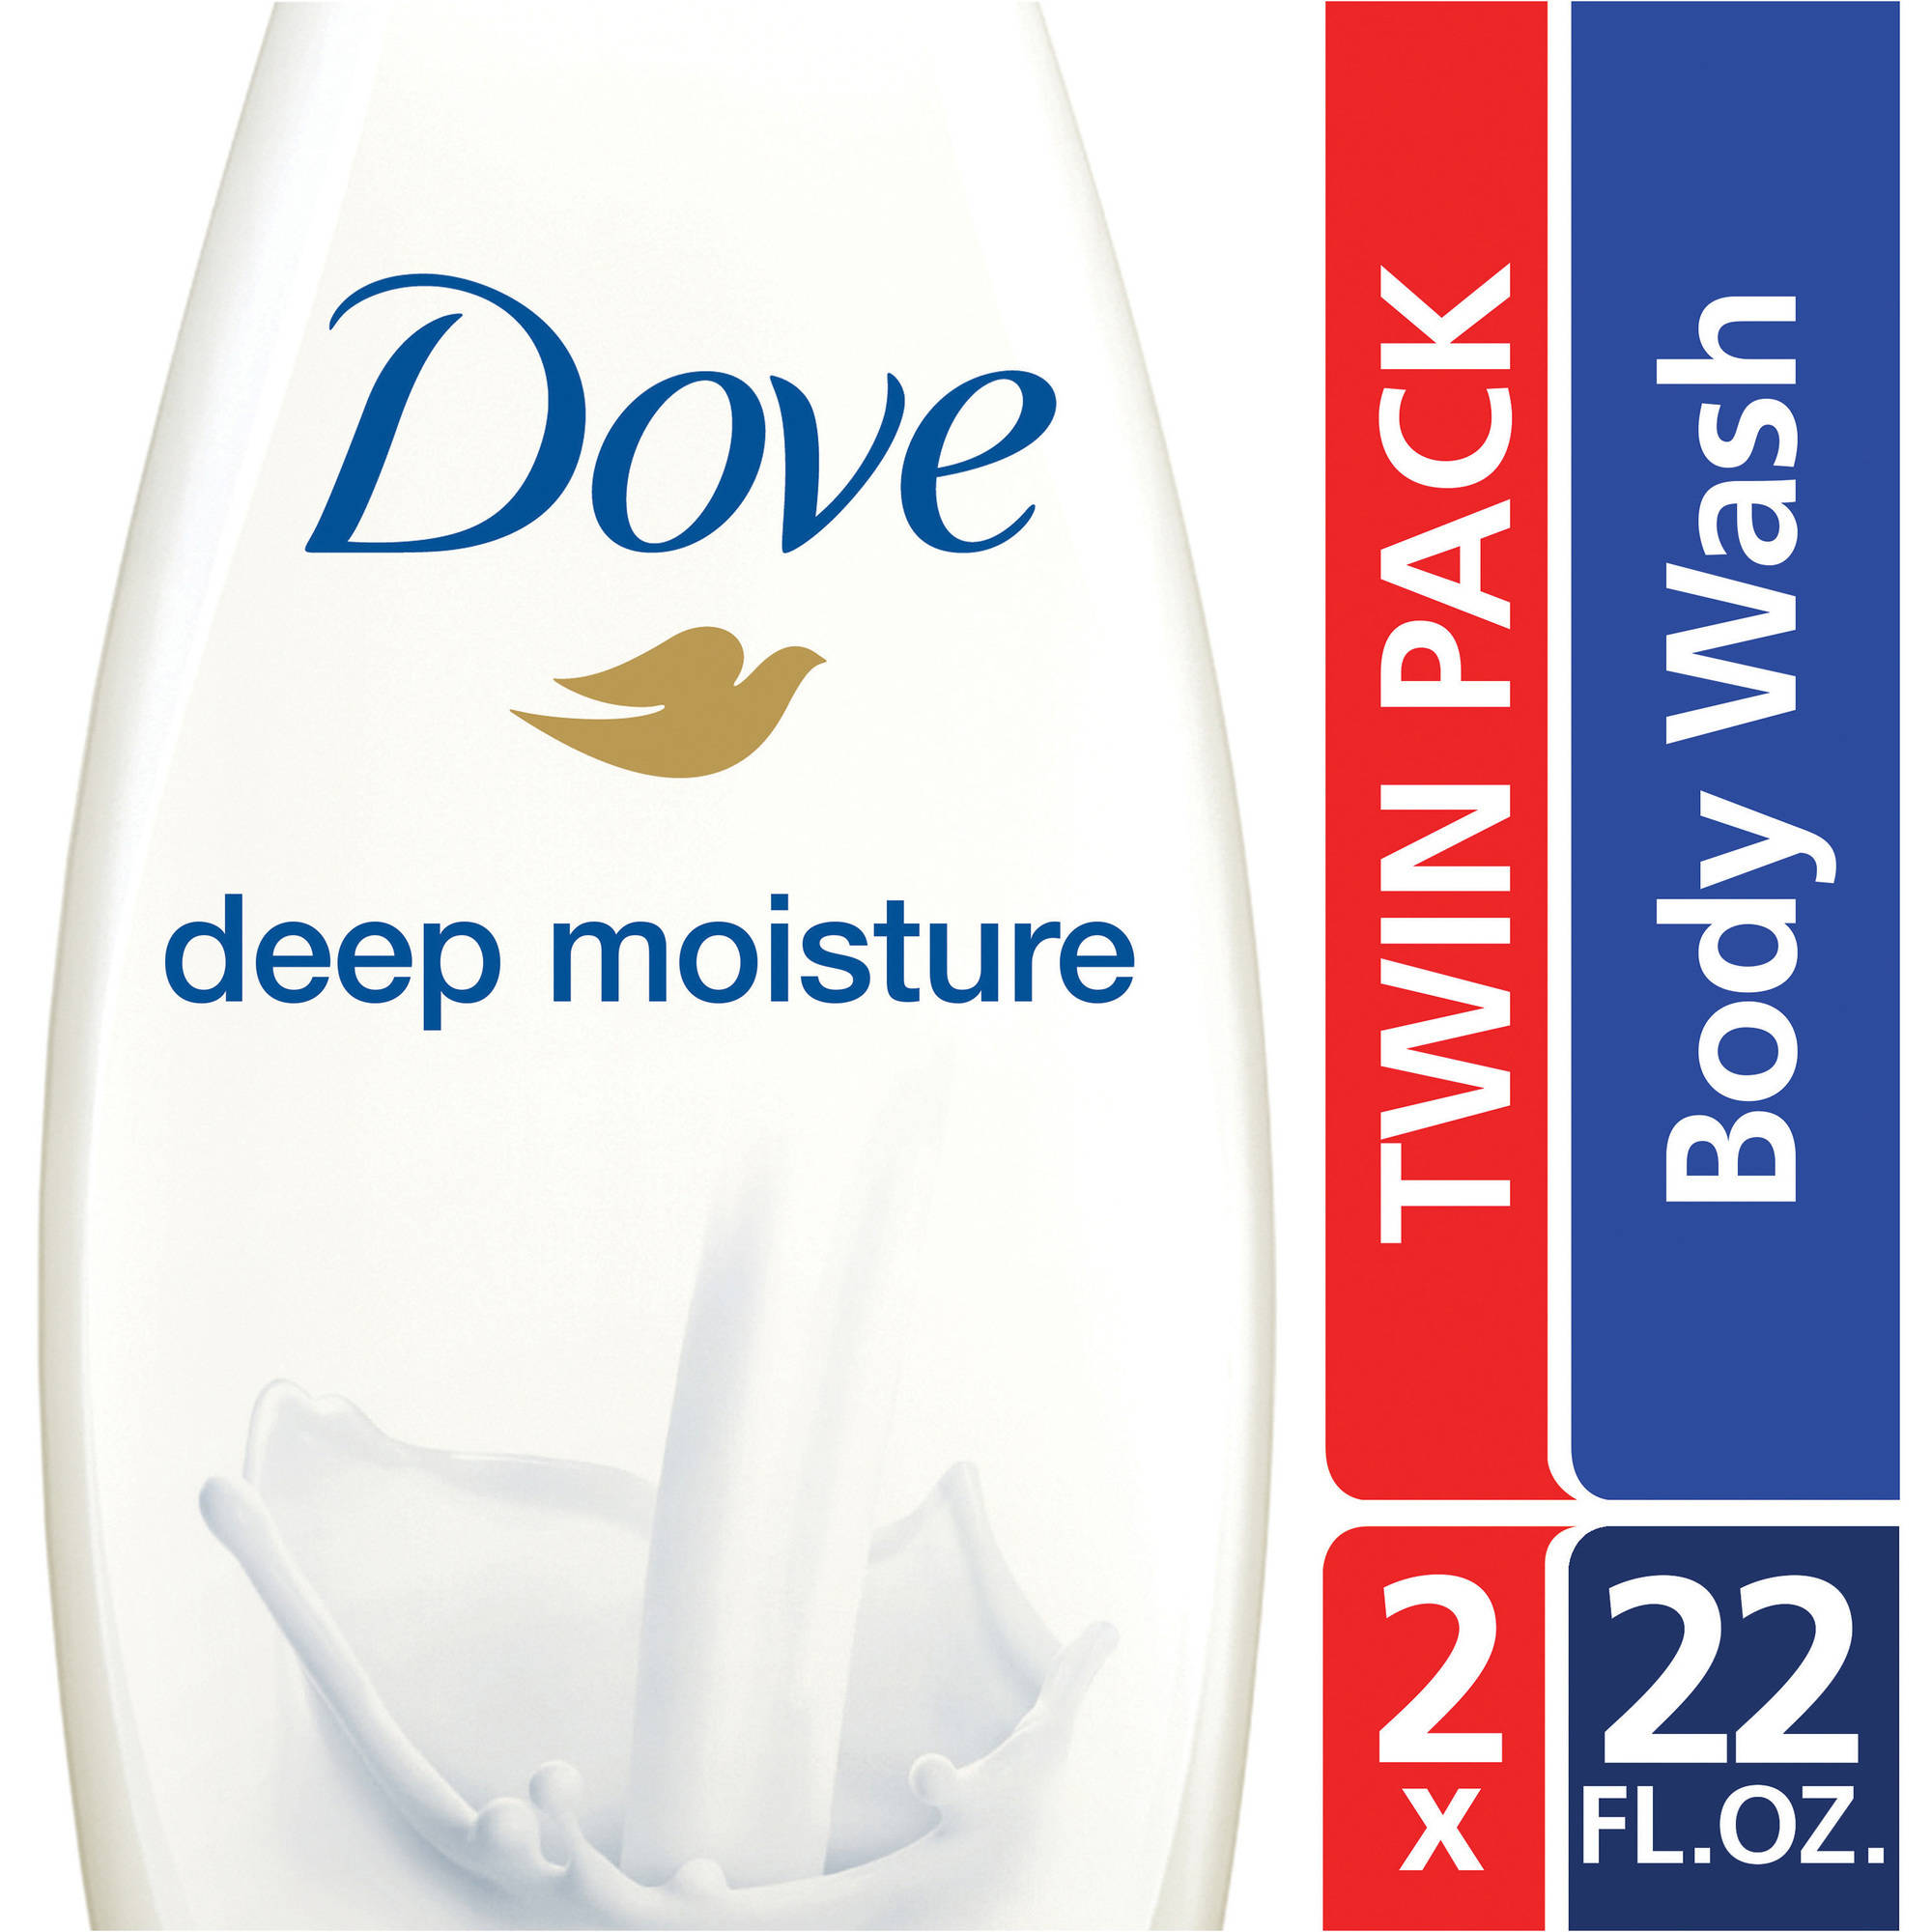 Dove Deep Moisture Moisturizing Body Wash, 22 oz, twin pack